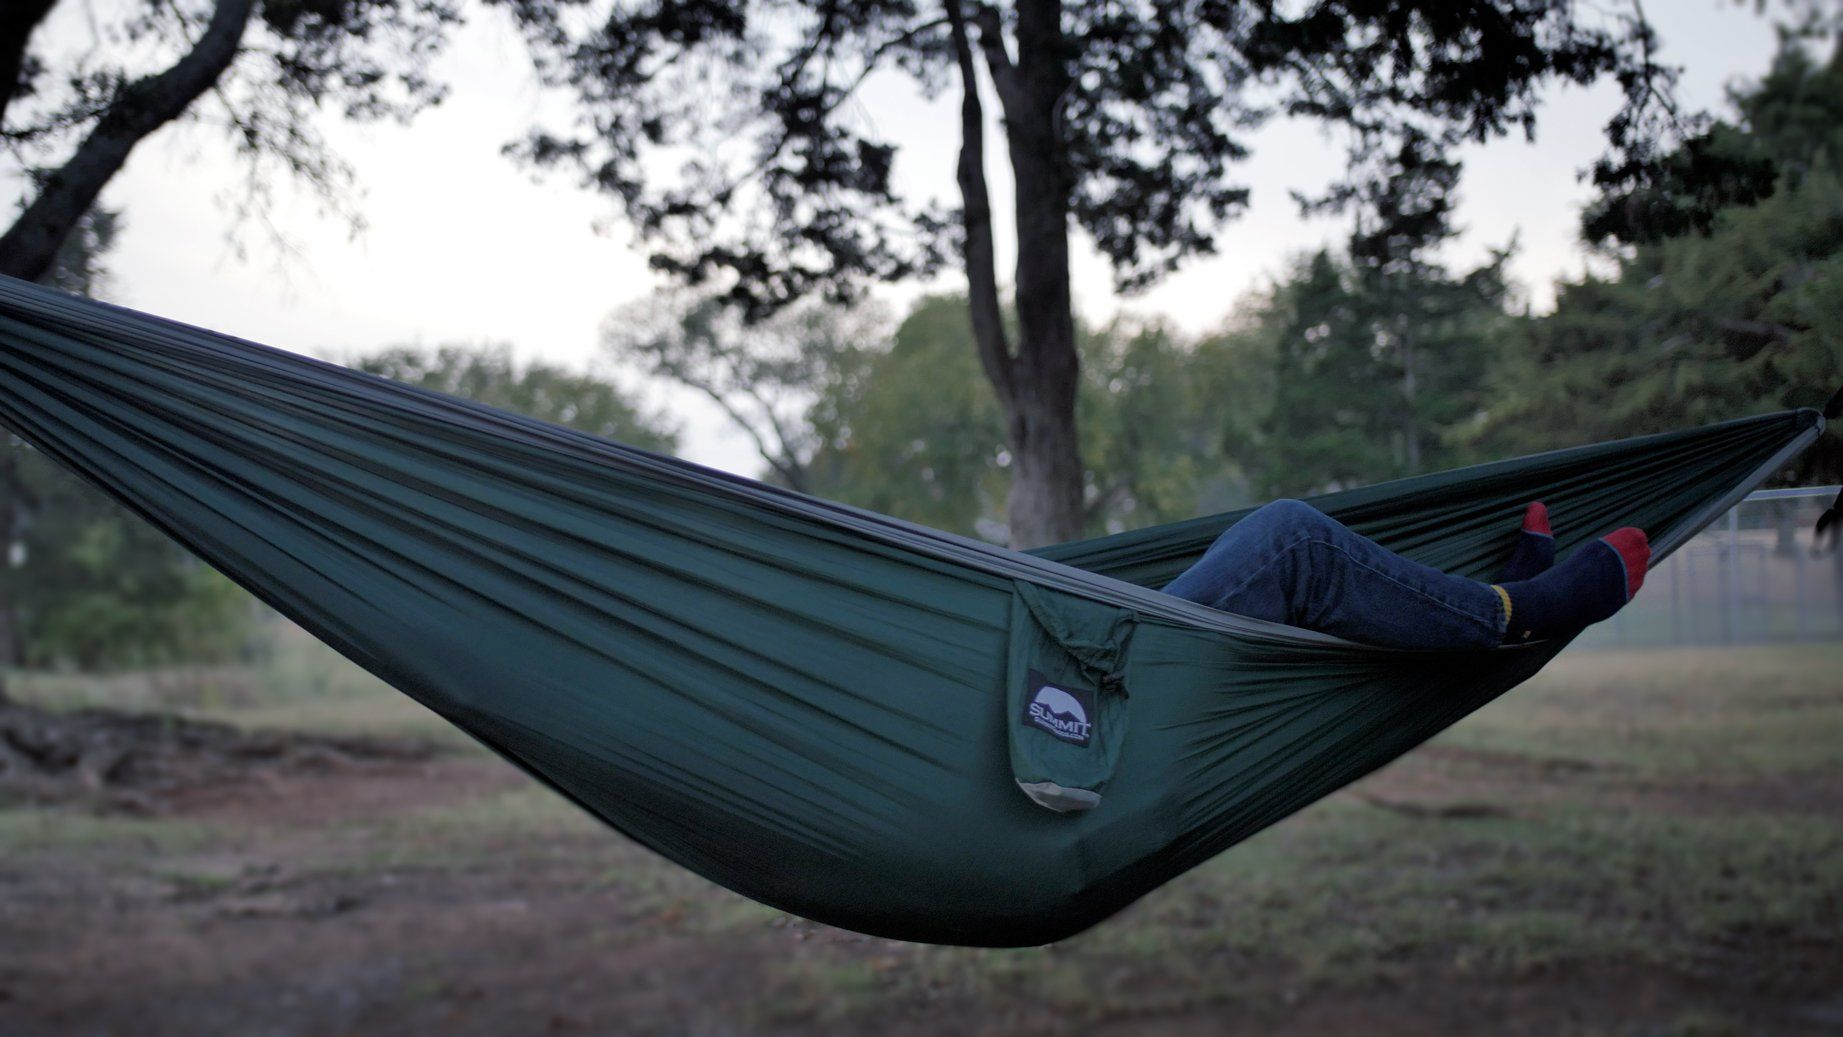 Summit Goods DoubleNest Camping Hammock with STRAPS INCLUDED